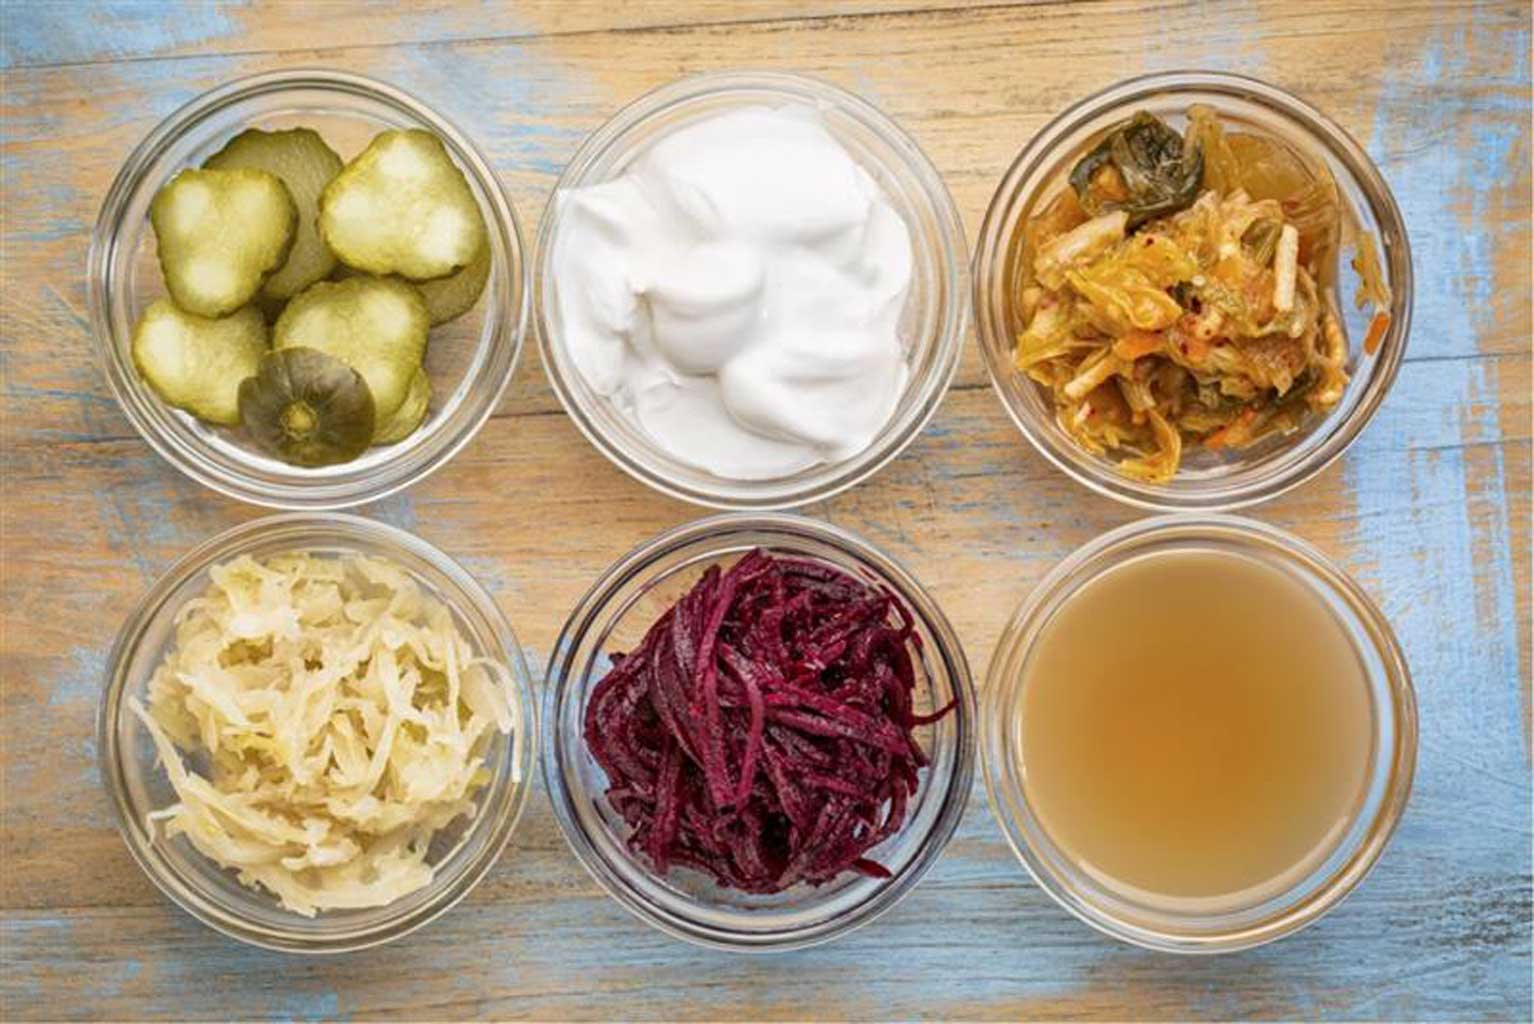 Six jars filled with cucumber pickles, coconut milk yogurt, kimchi, sauerkraut, red beets, and apple cider vinegar